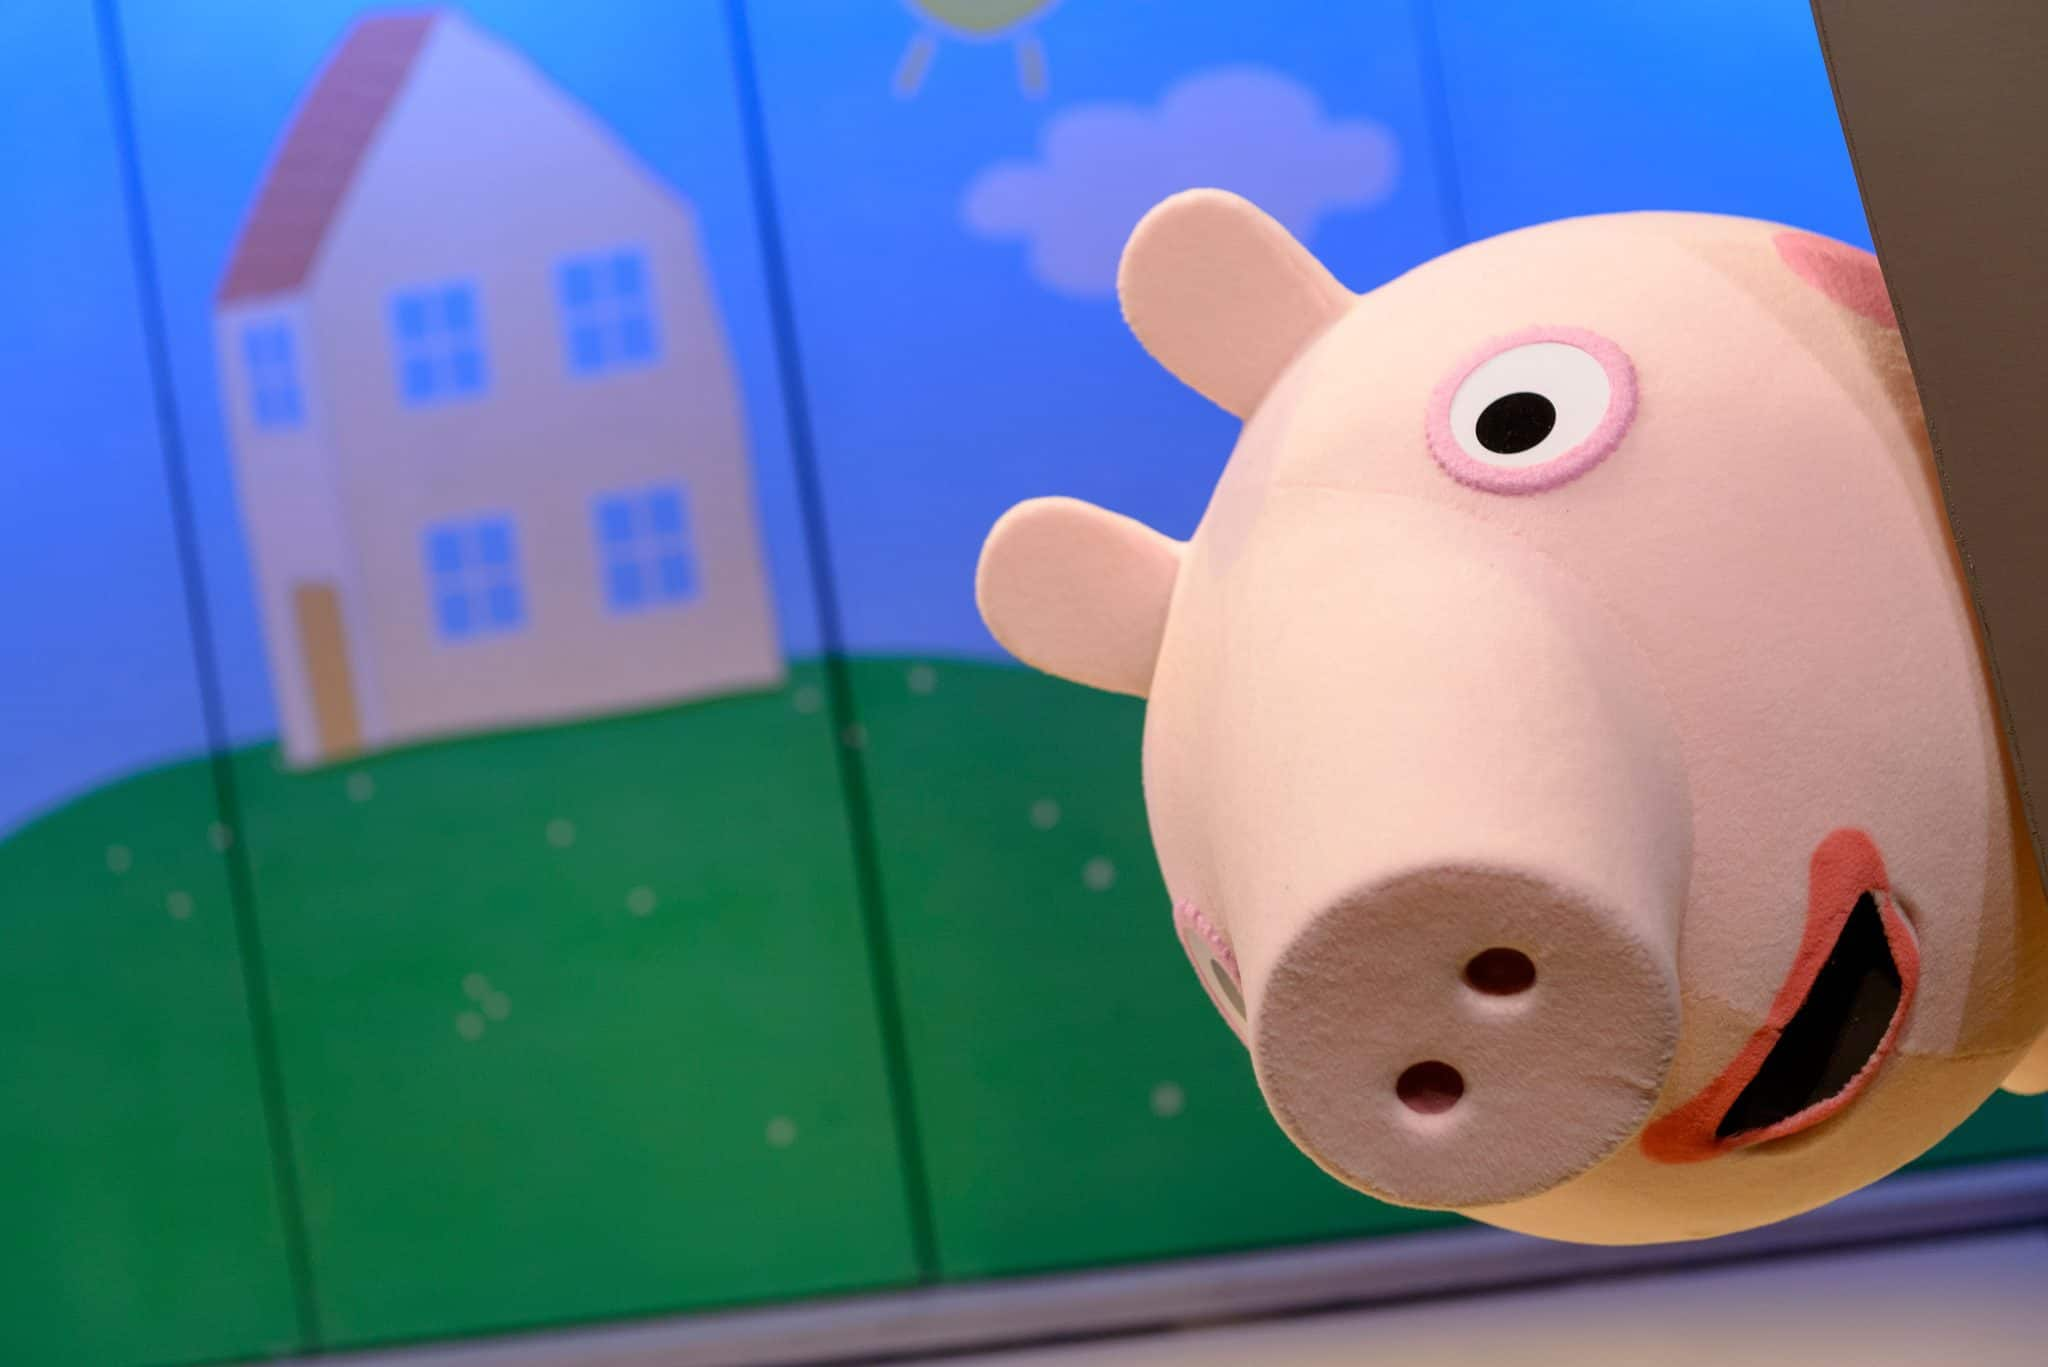 Peppa Pig's big surprise live tour. Peppa playing hide and seek.